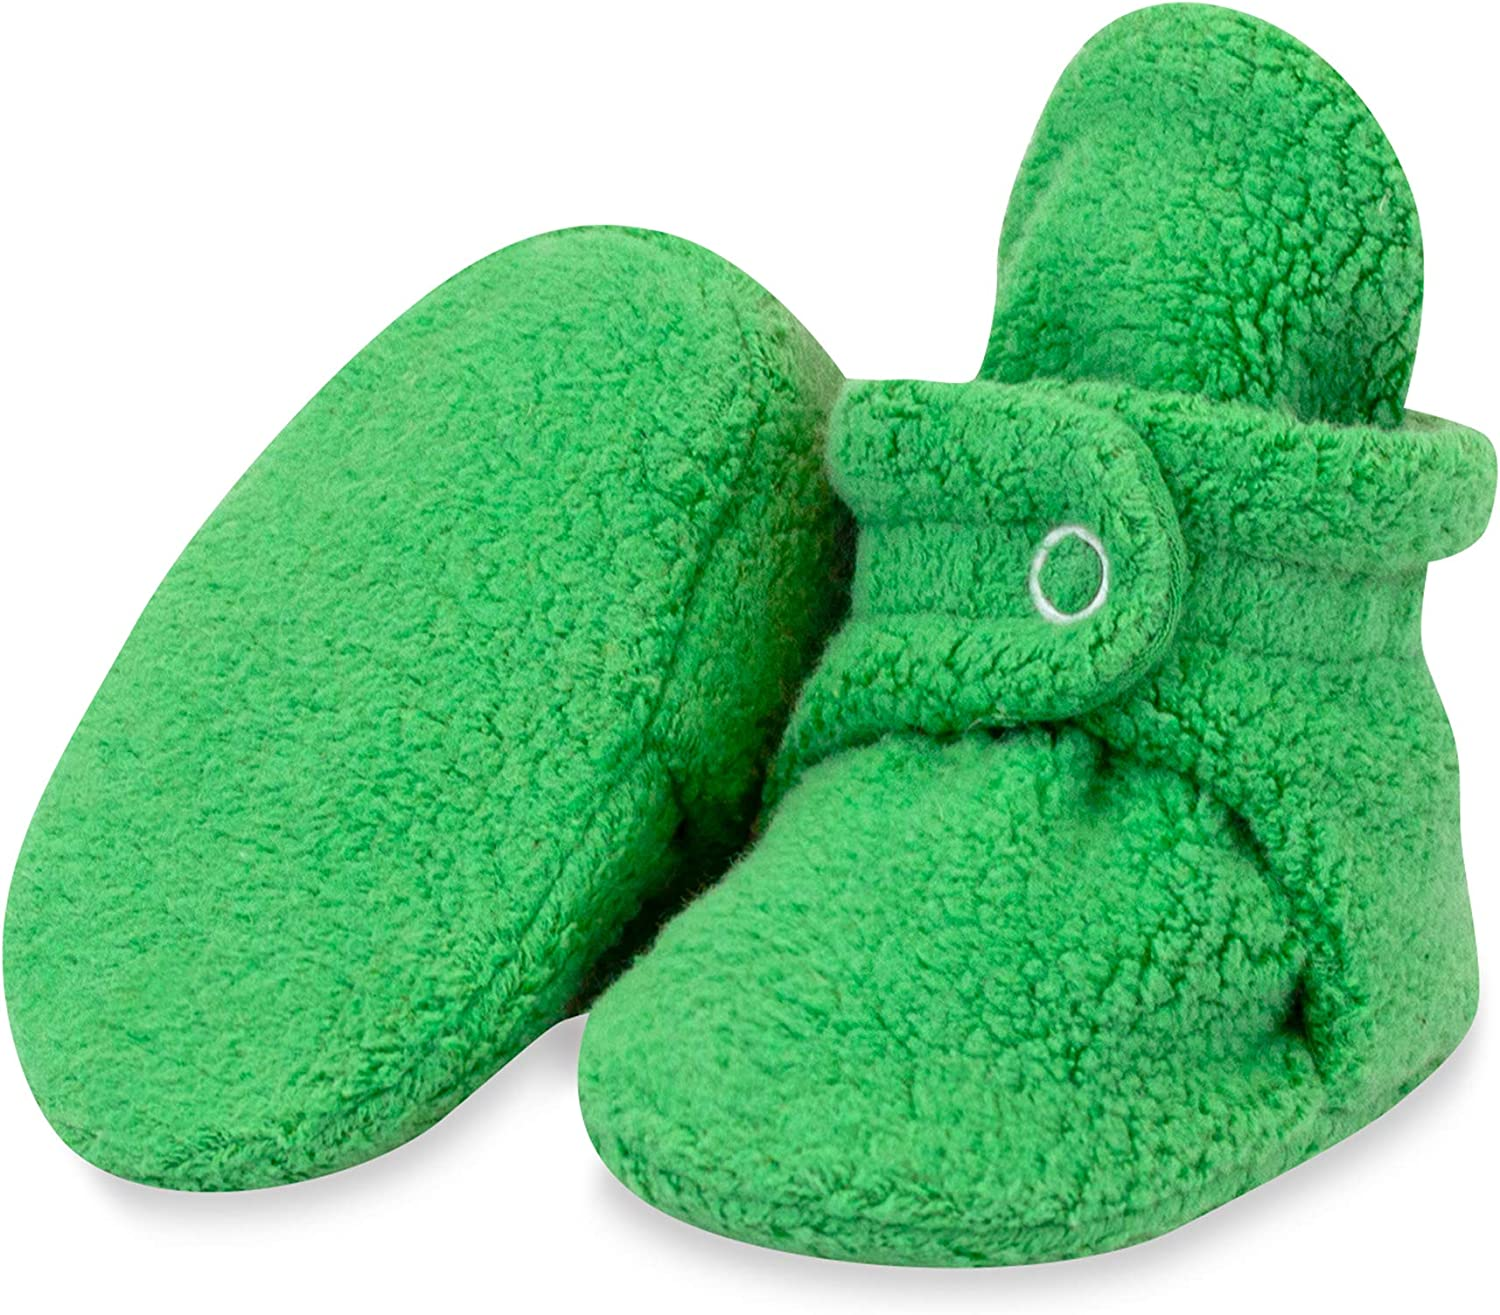 Zutano Cozie Fleece Baby Booties, Unisex, For Newborns and Infants: Clothing